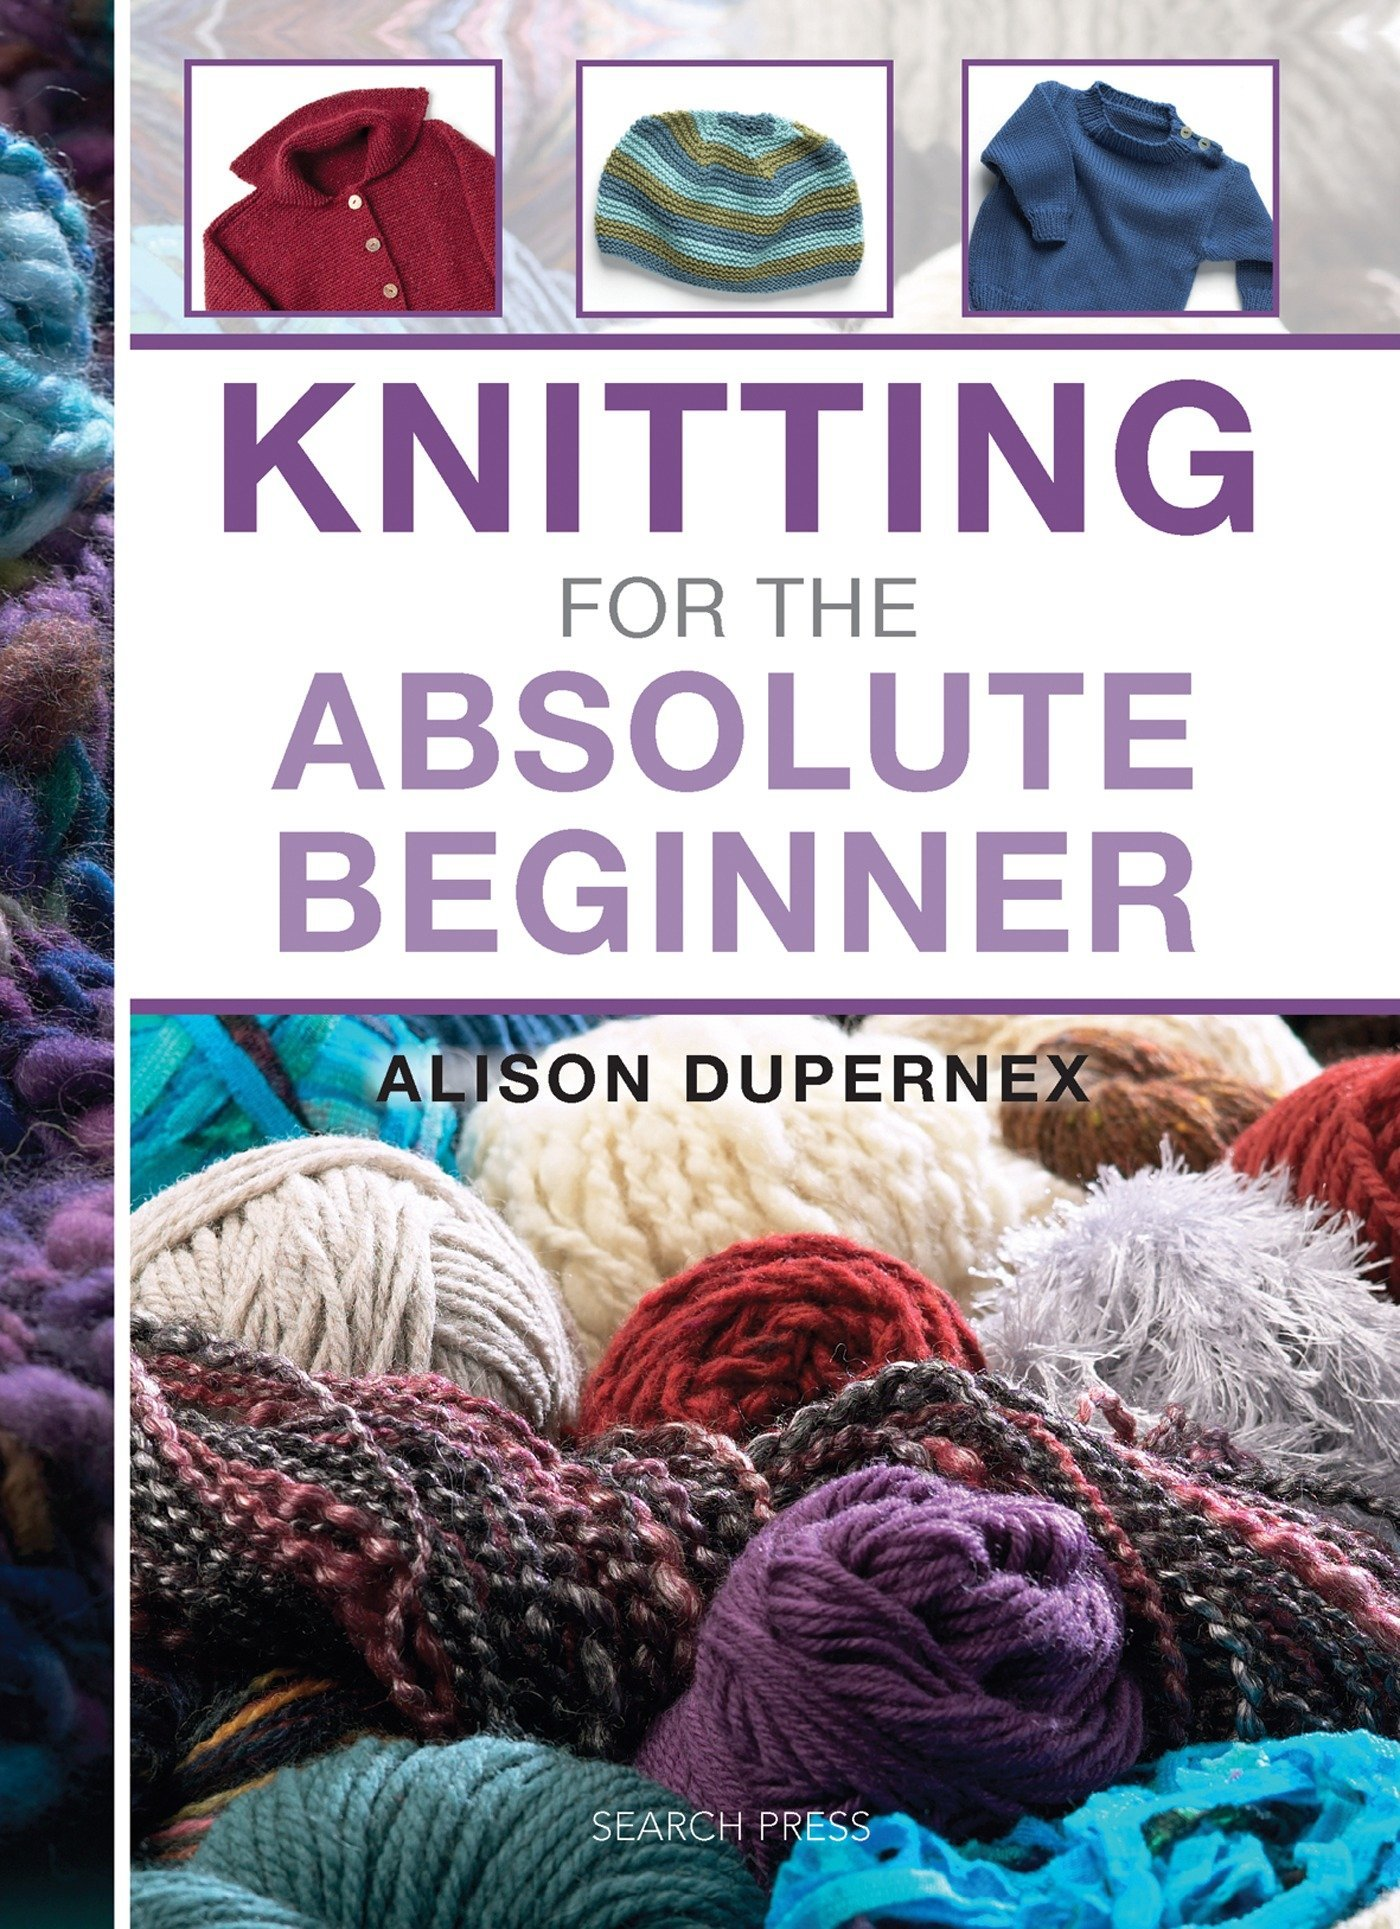 Knitting for the Absolute Beginner (Absolute Beginner Craft) by Search Press (Image #1)